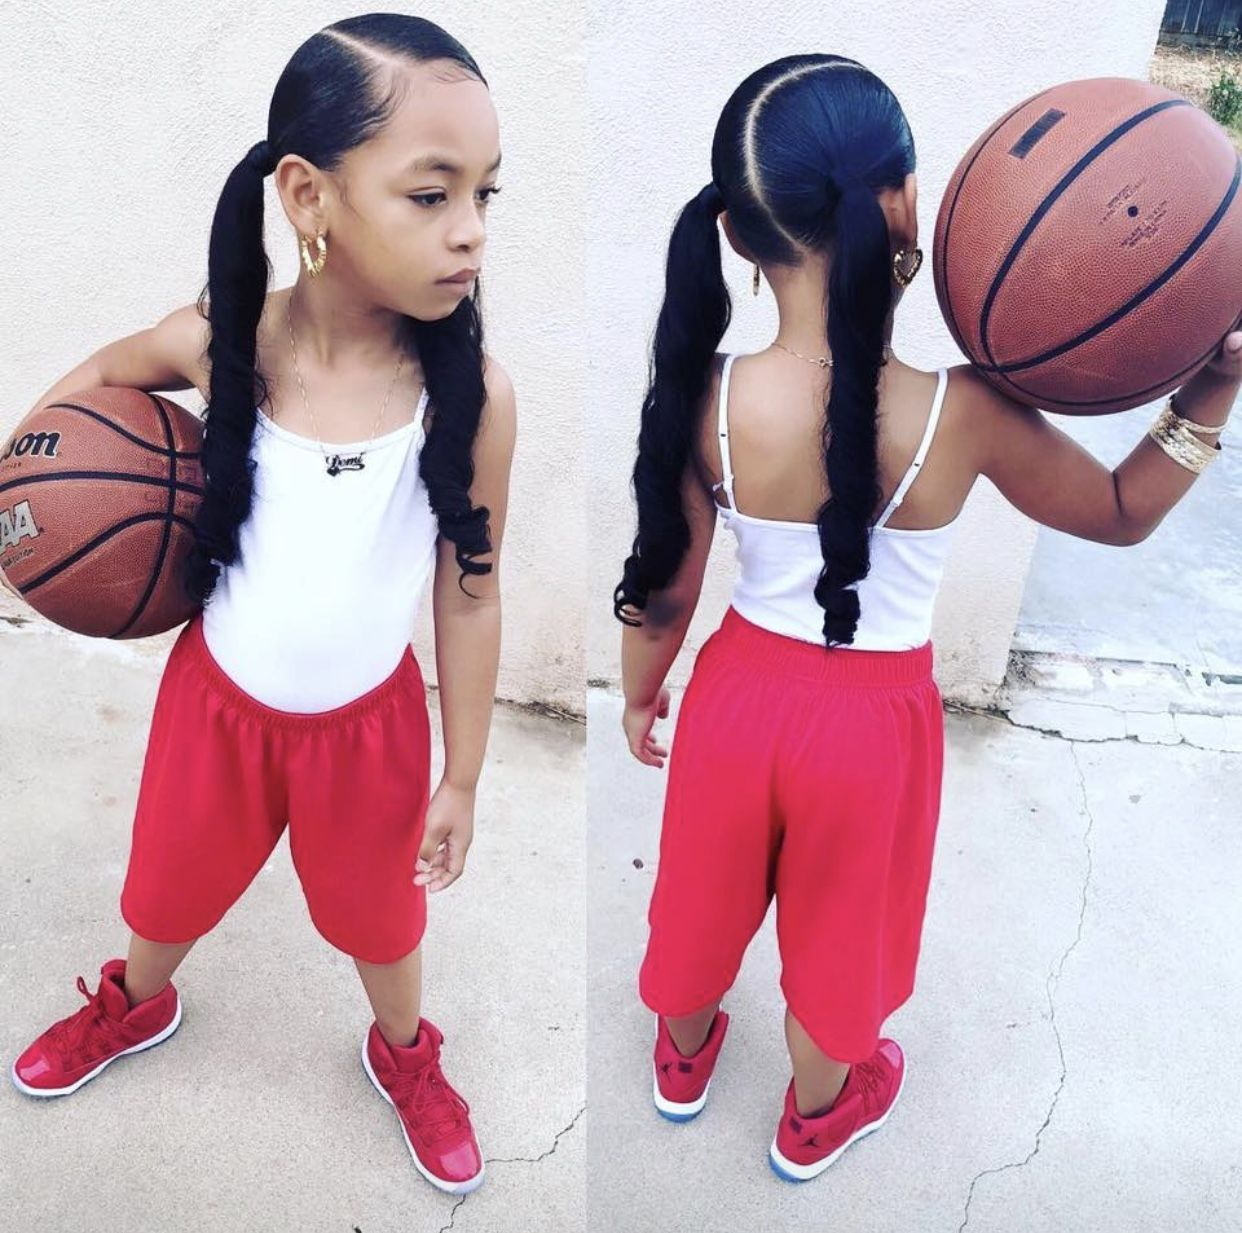 Hairstyles For Black Basketball Players Girls - Wavy Haircut